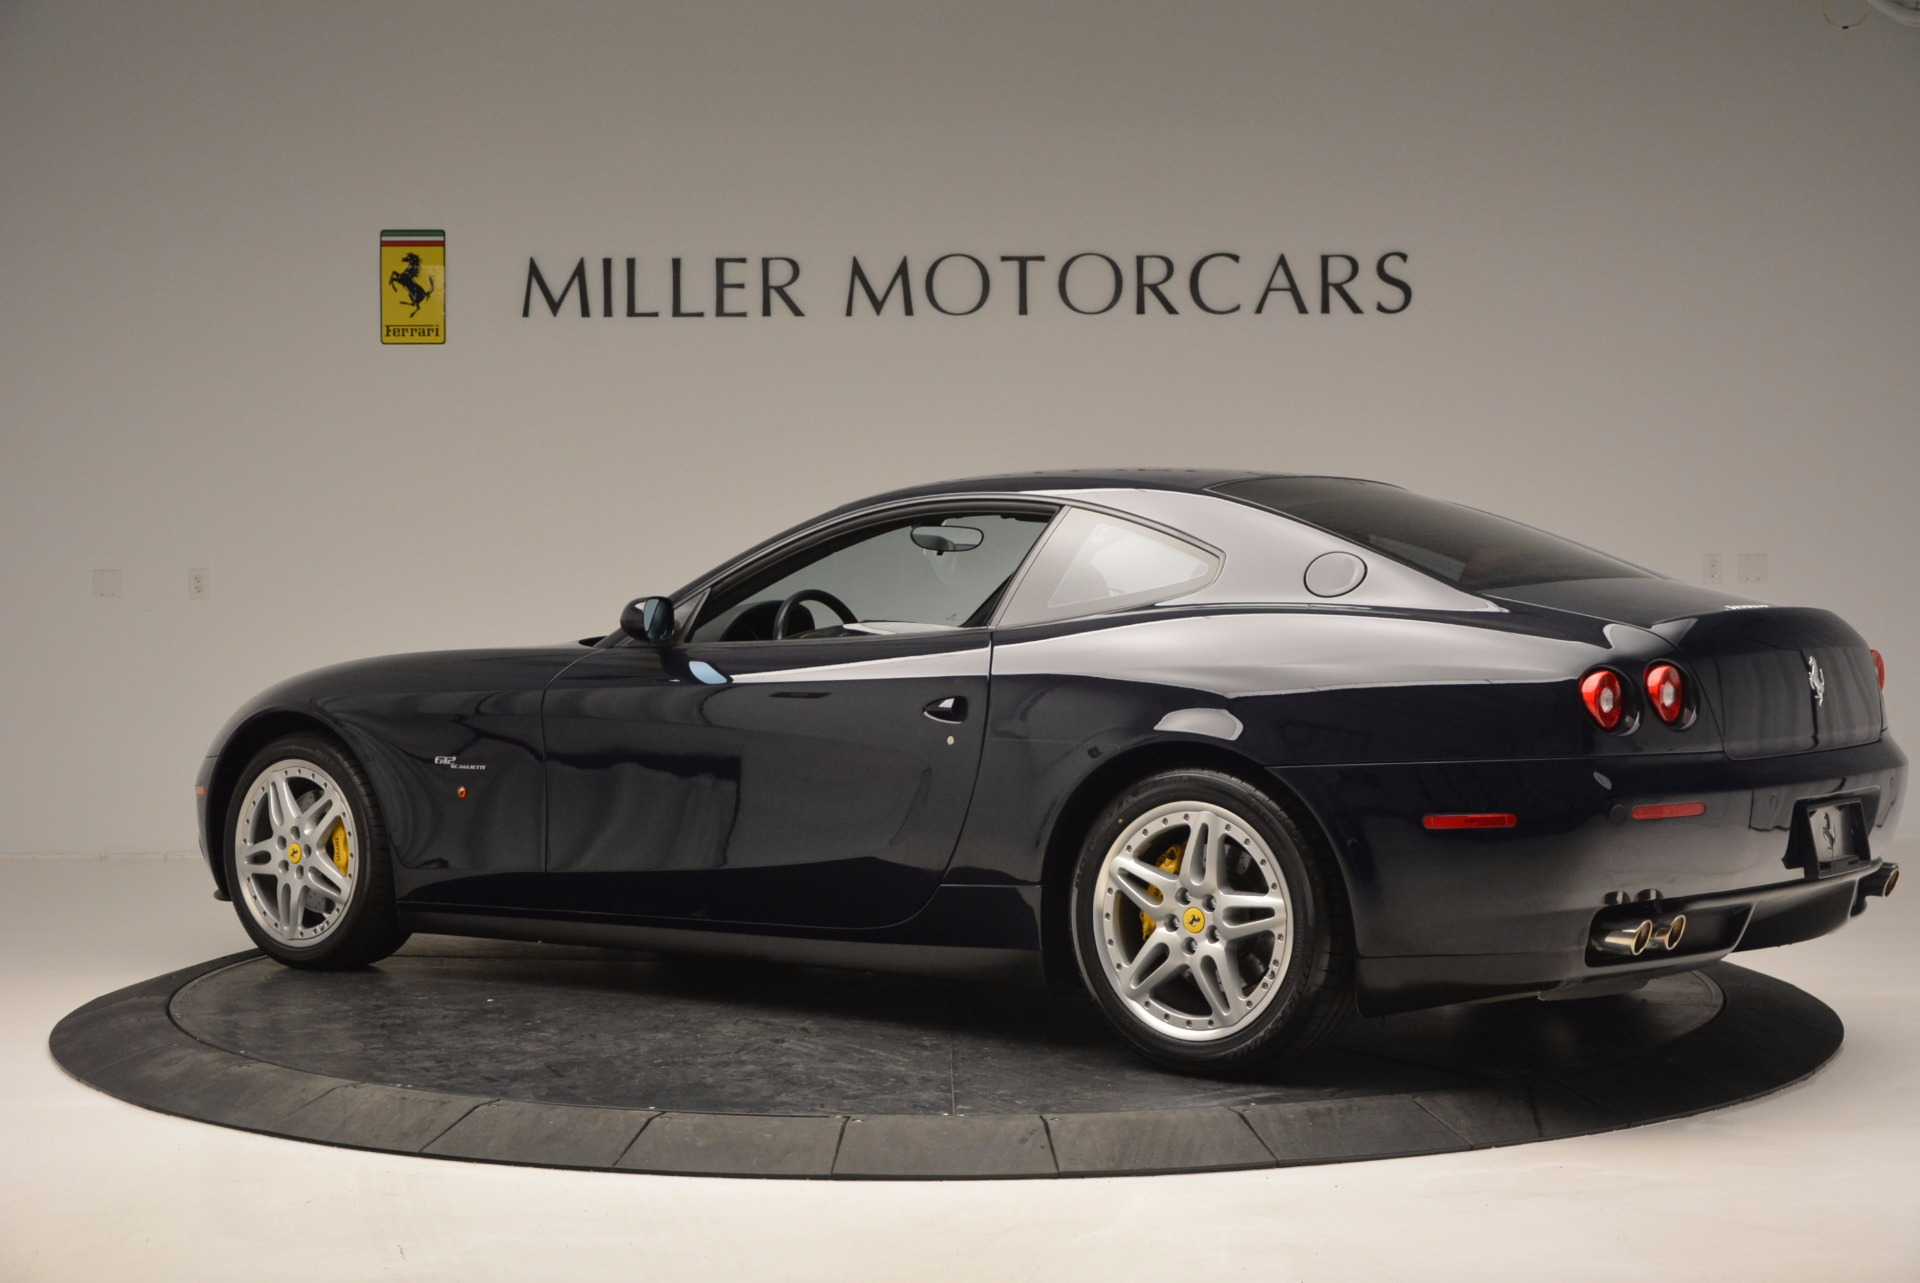 Used 2005 Ferrari 612 Scaglietti 6-Speed Manual For Sale In Greenwich, CT 854_p5